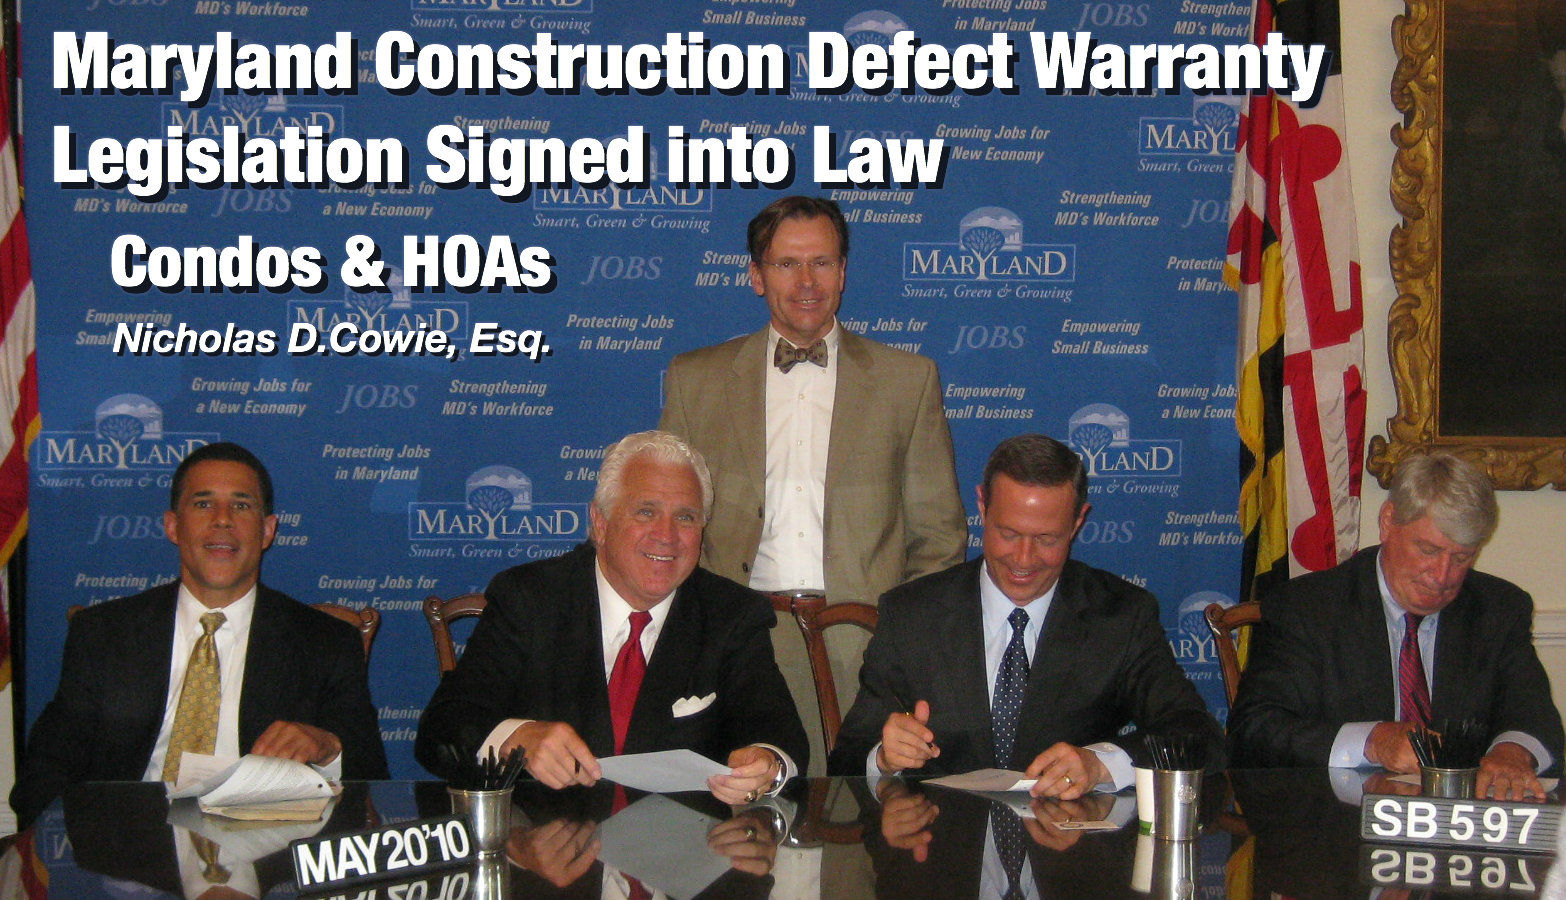 Nicholas D. Cowie drafted construction defect warranty reform legislation that closes loophole and extend warranties for Condominiums and Homeowner Associations